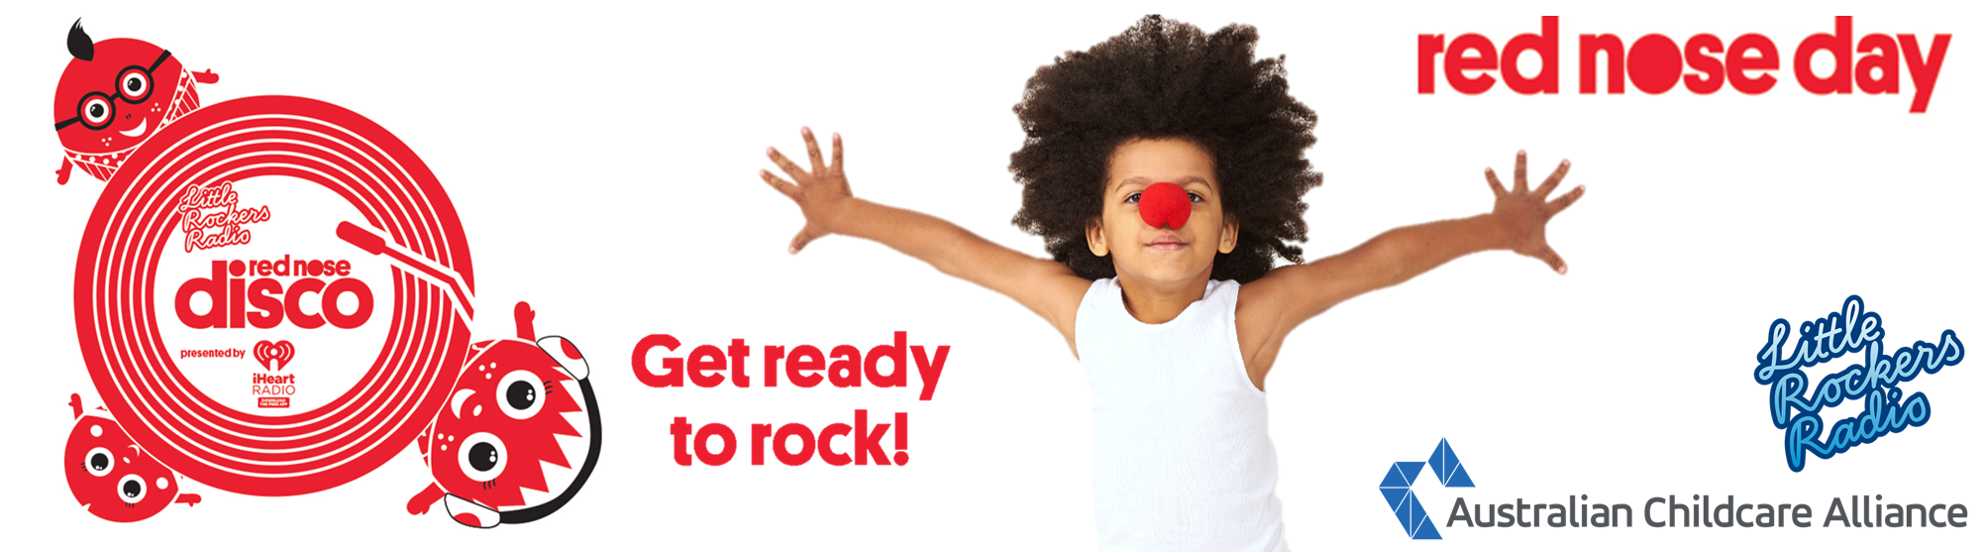 Australian Childcare Alliance supporting the Little Rockers Red Nose Disco